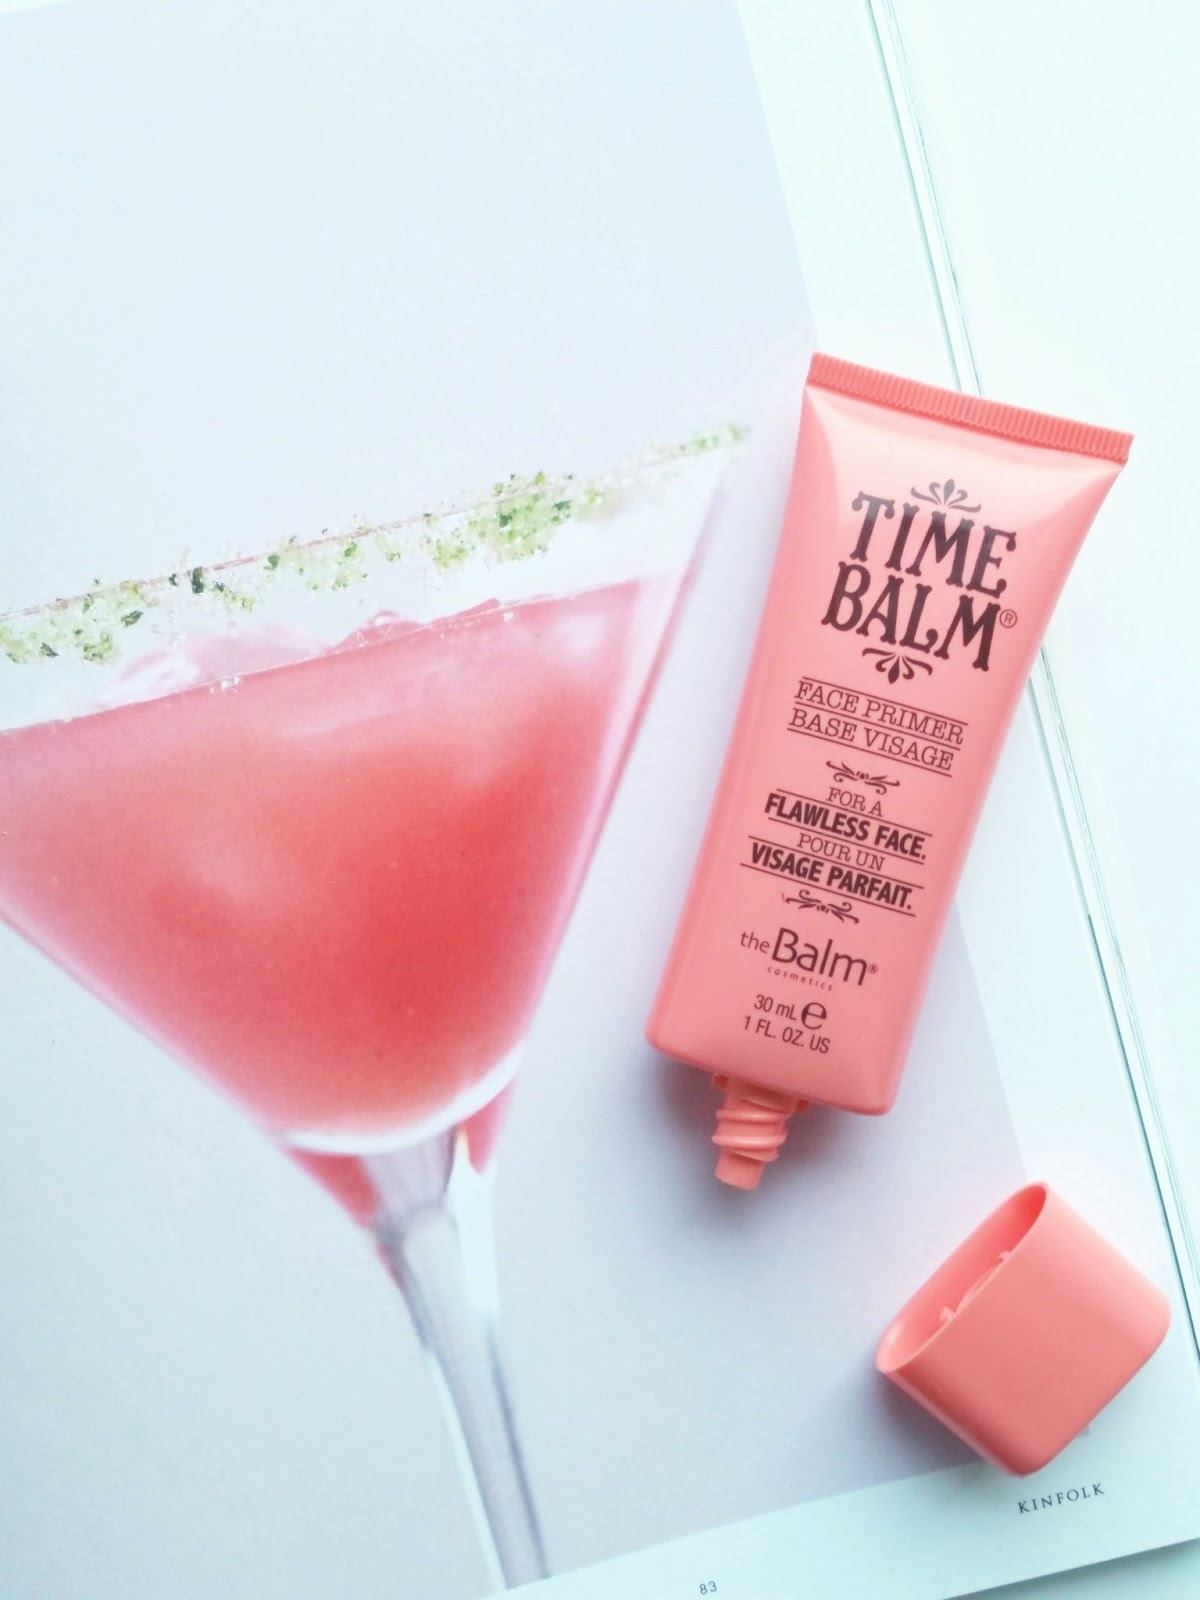 The Balms' Time Balm review